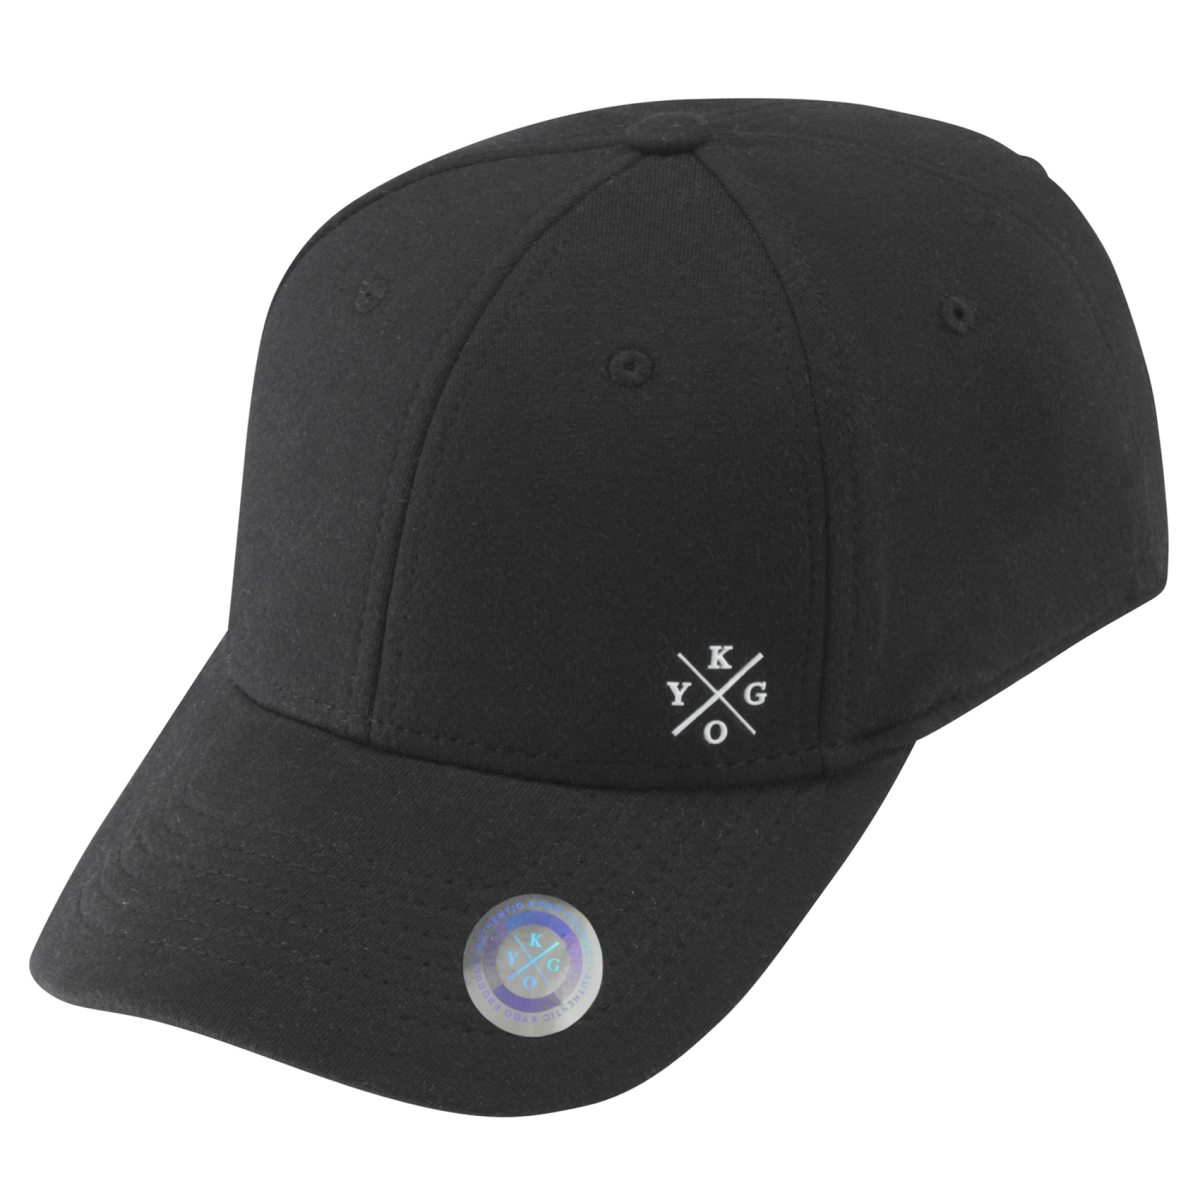 Find every shop in the world selling kygo ibiza soundwave brim cap ... aeac80a7182c